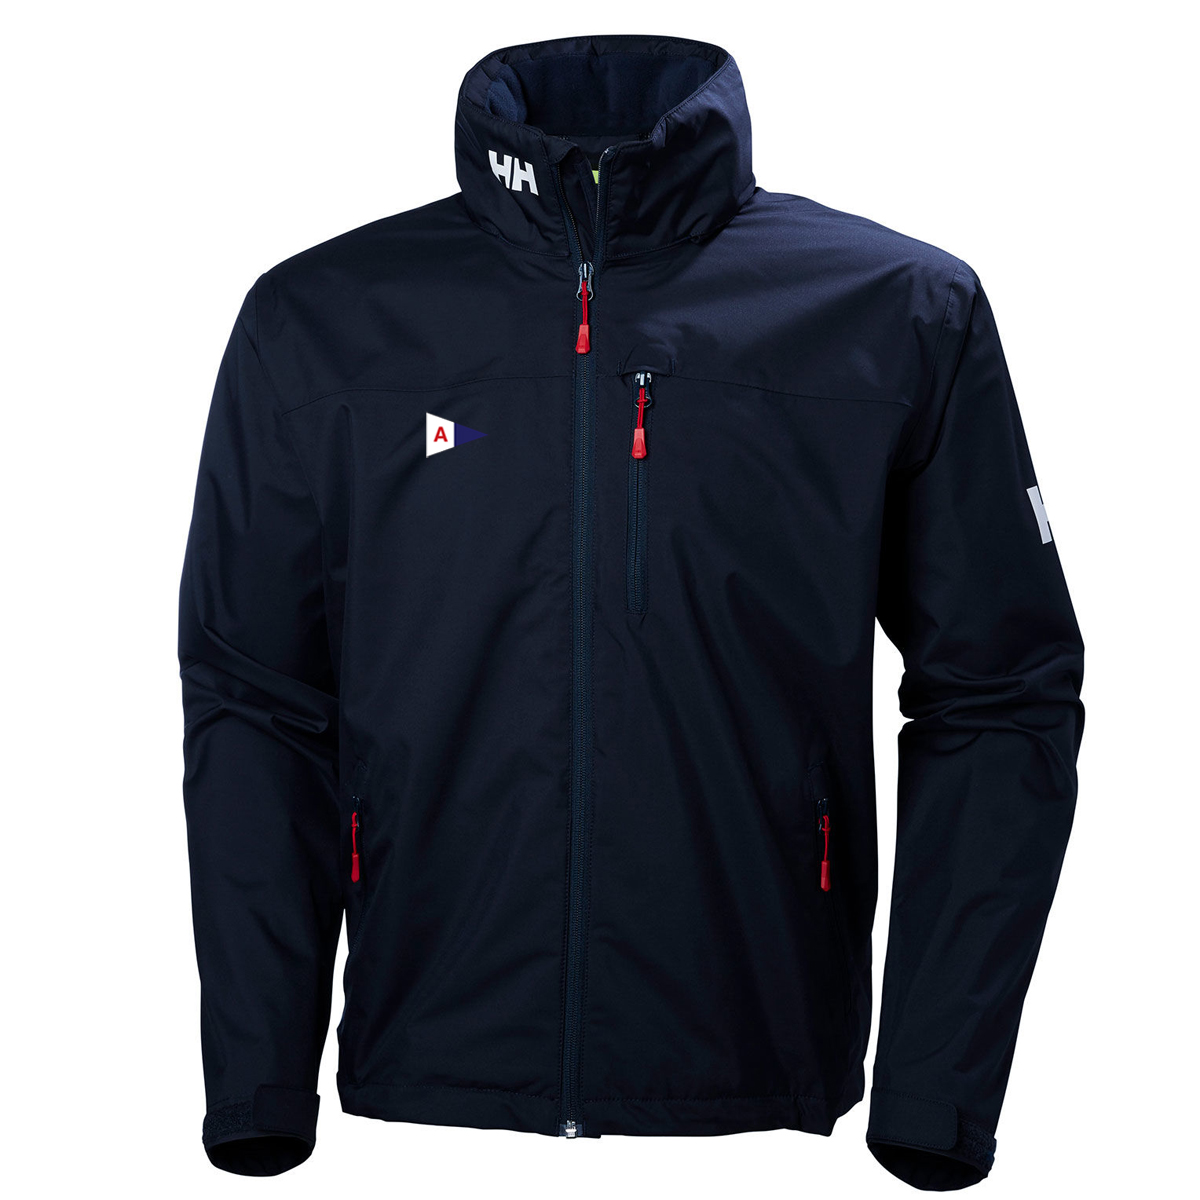 Arundel Yacht Club - Men's Helly Hansen Hooded Crew Jacket